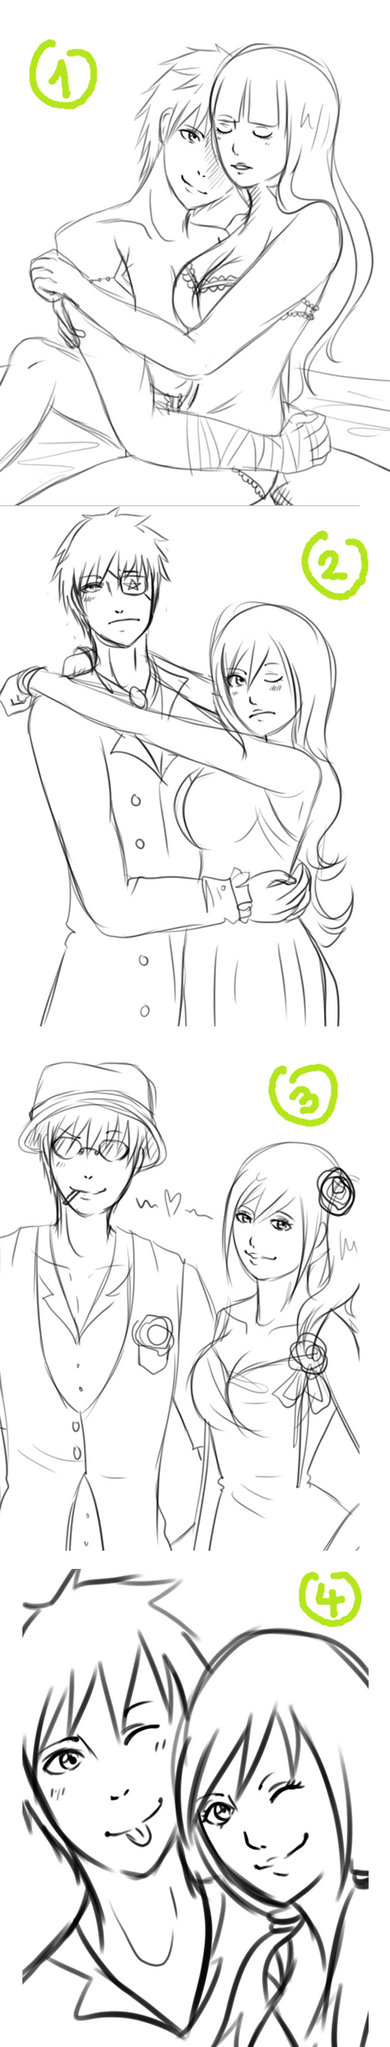 Sketchdump: Couples by LotteQ